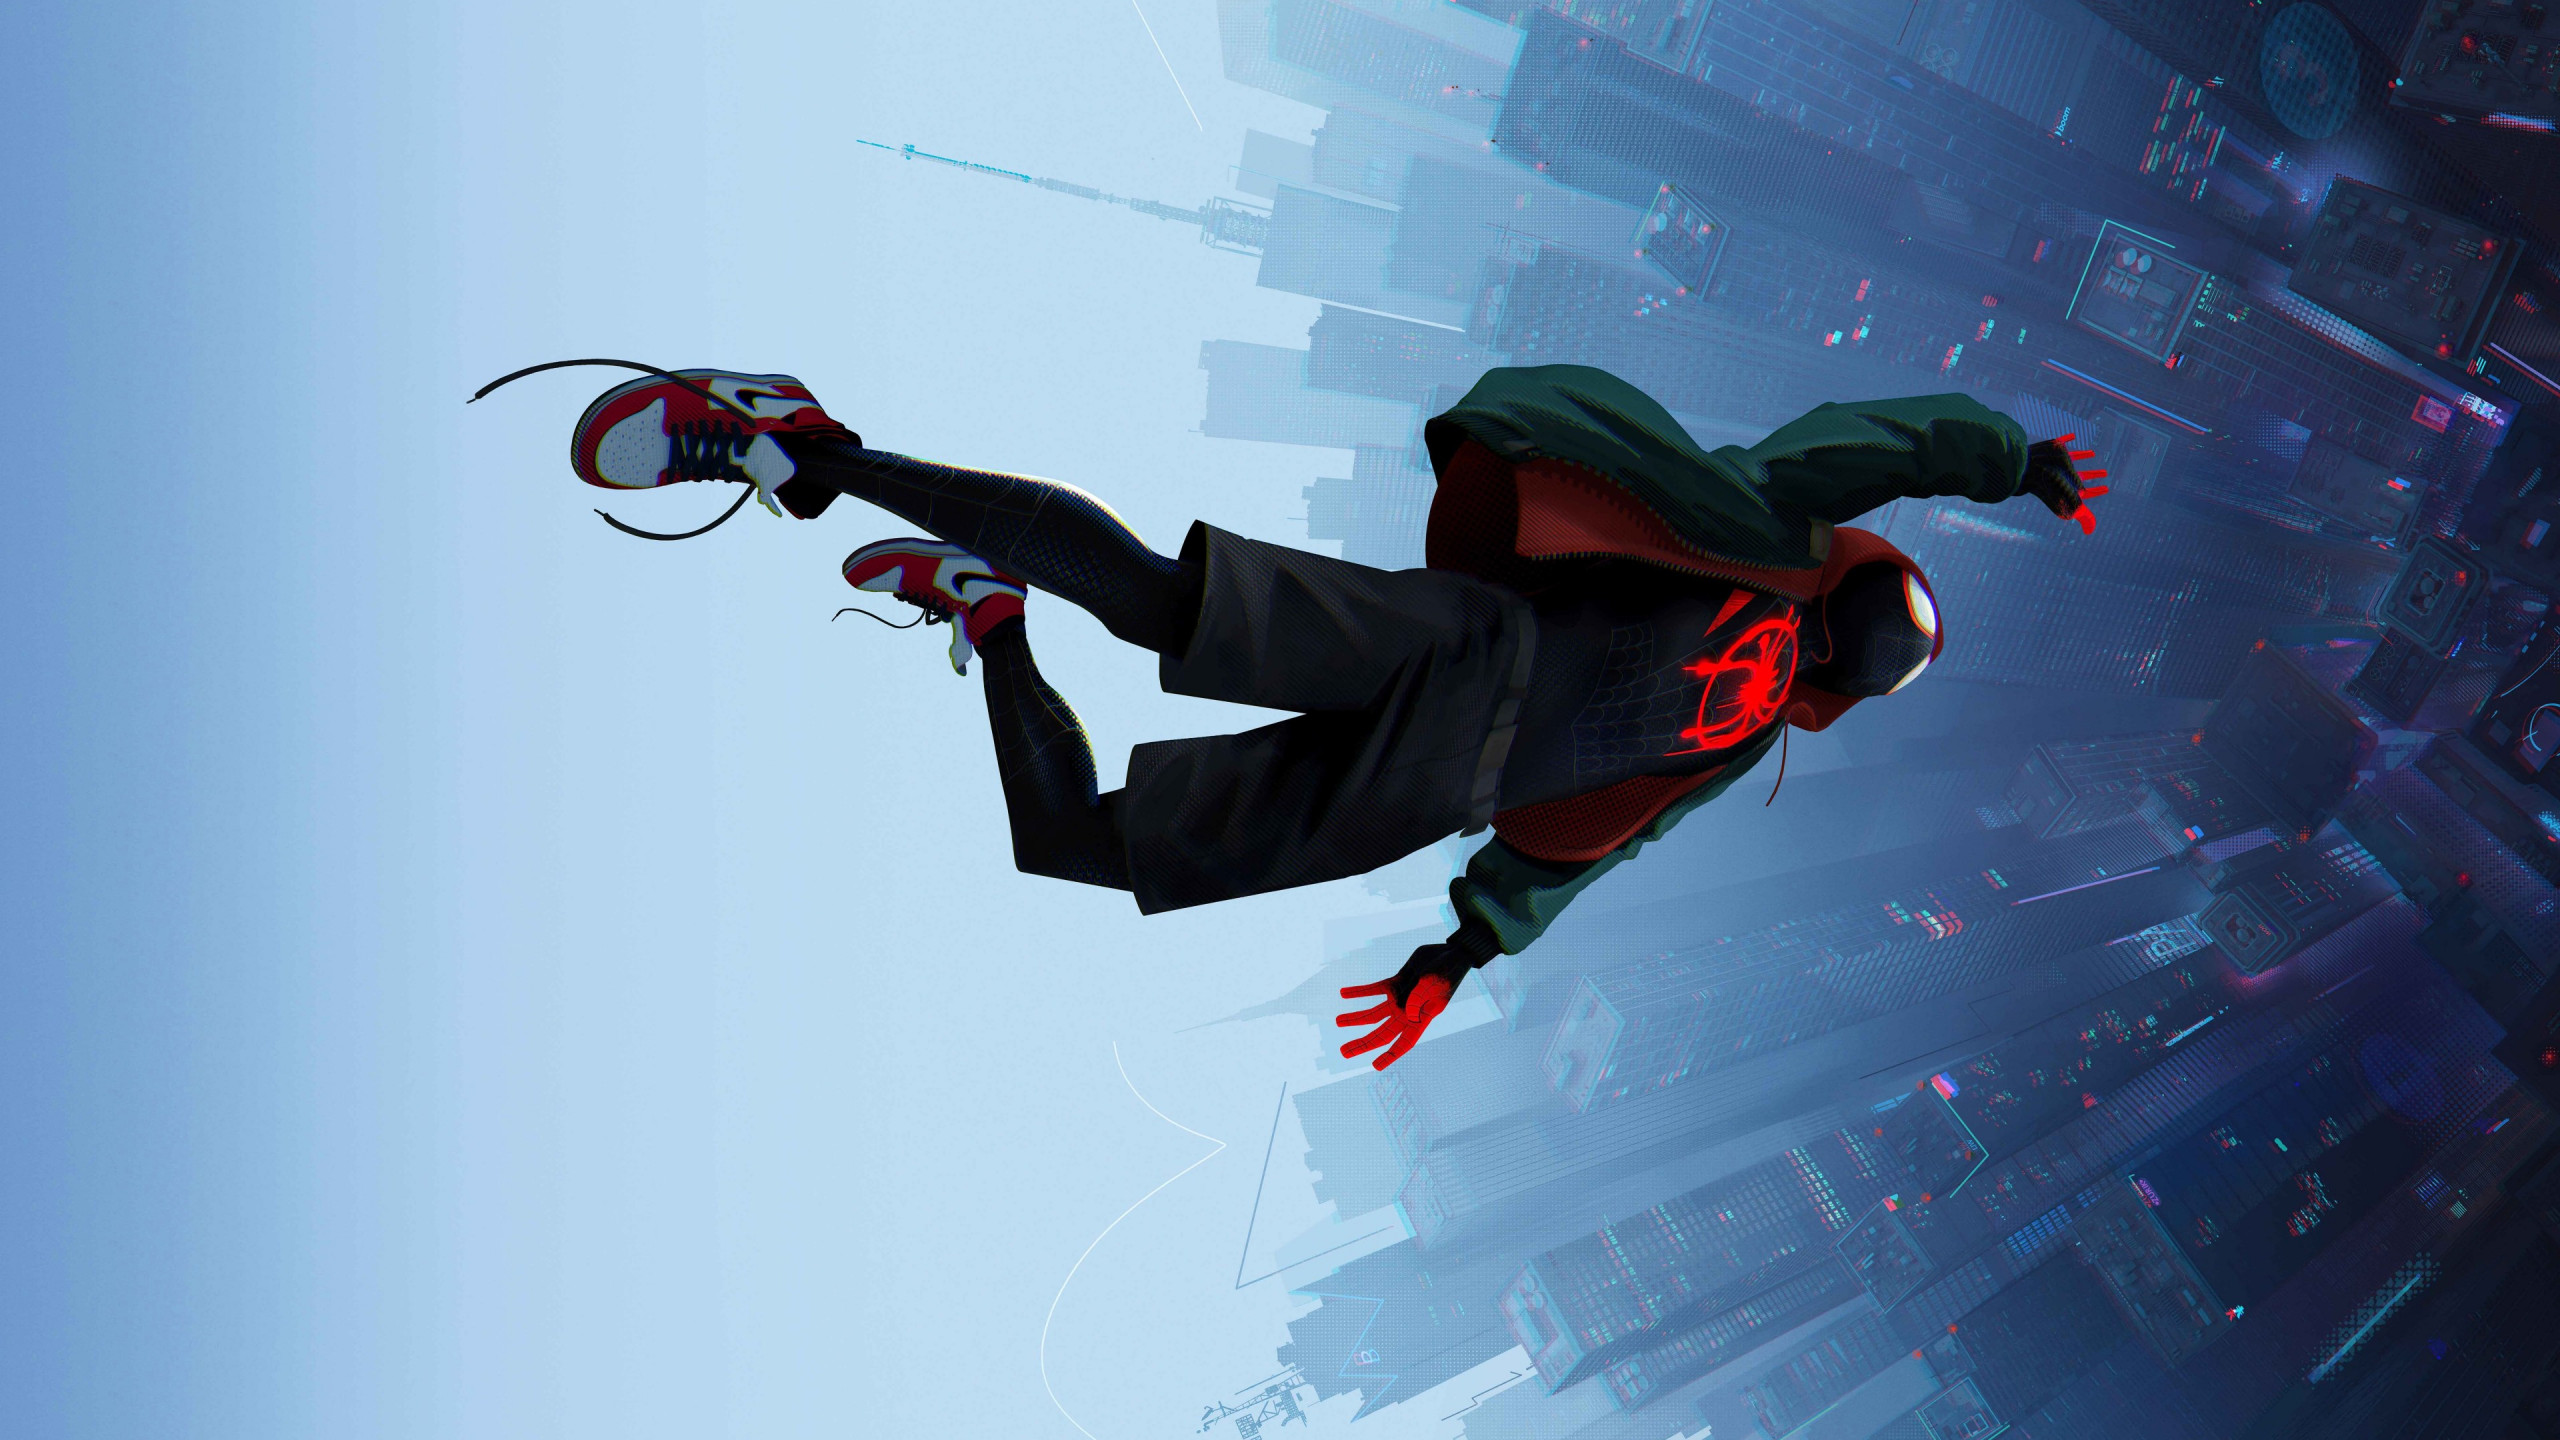 Spider Man: Into the Spider Verse 2018 wallpaper 2560x1440